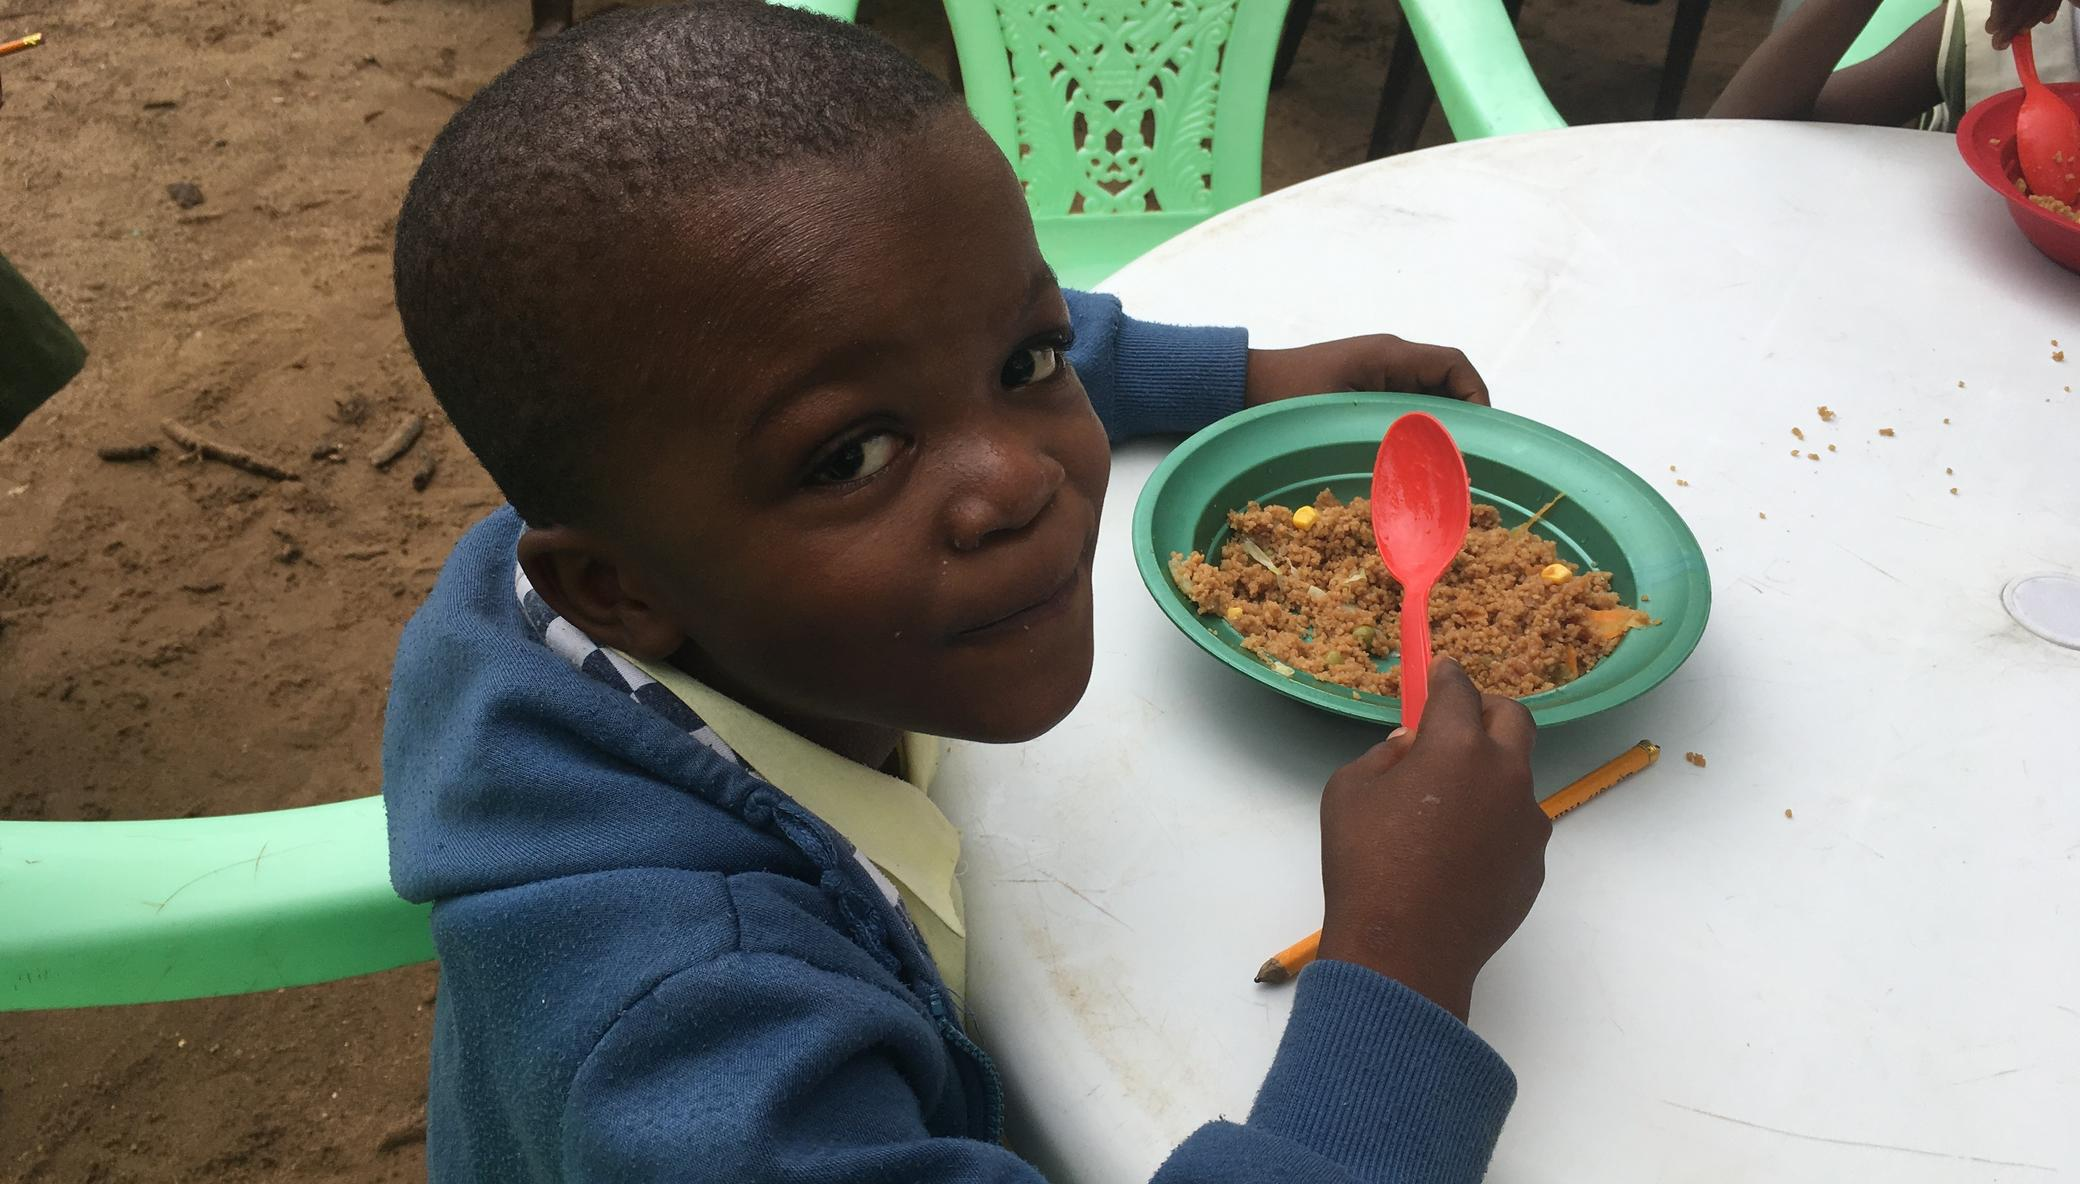 The kids kitchen: daily meals in the wake of Ebola